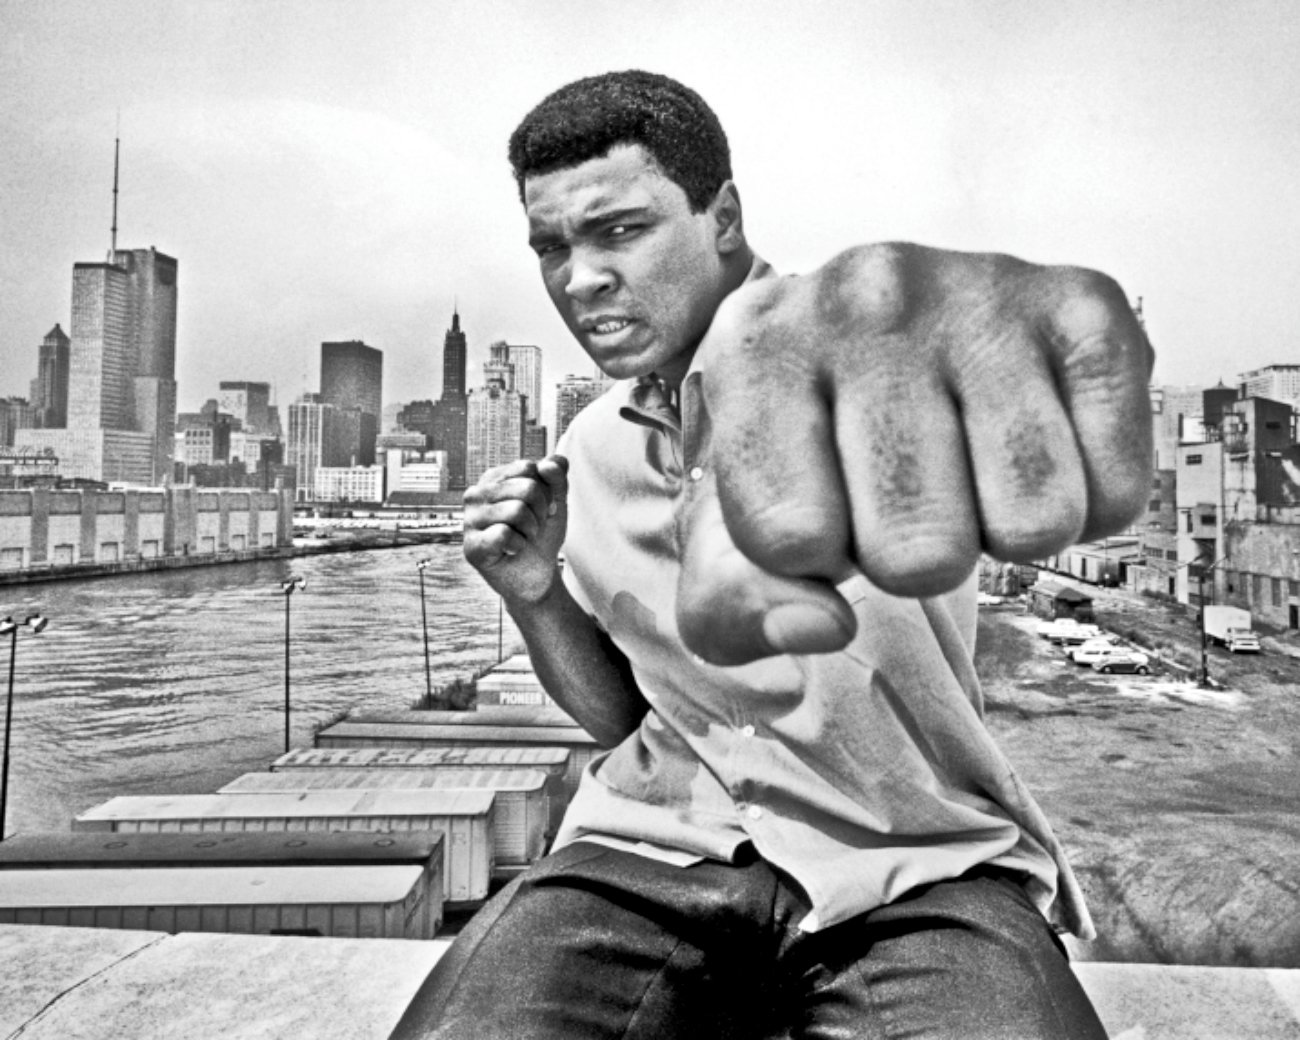 muhammad ali hero essay In 2010, actor and comedian billy crystal wrote an essay for usa today sports on what muhammad ali means to him.